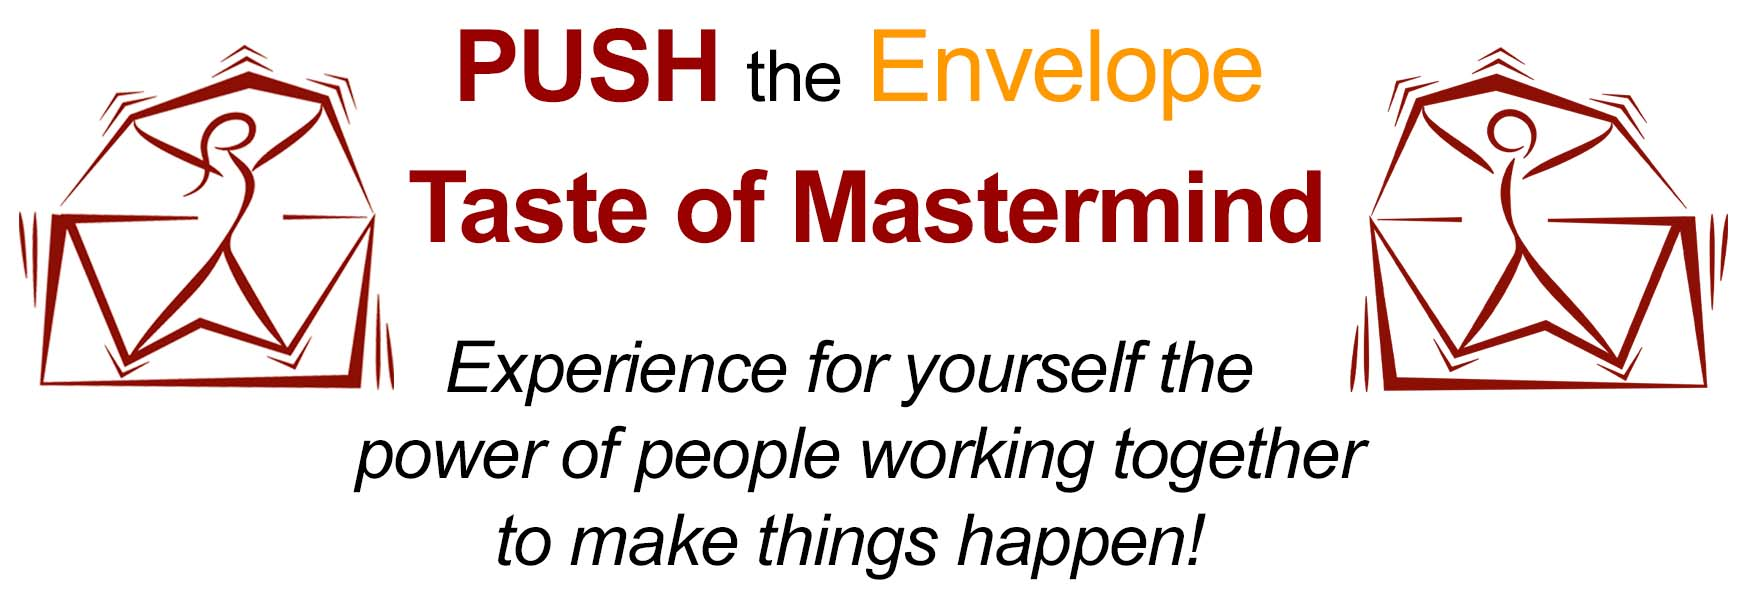 PUSH the Envelope Taste of Masterminds with Laura Hess and Philip Cohen | So You Can Experience the Real Thing